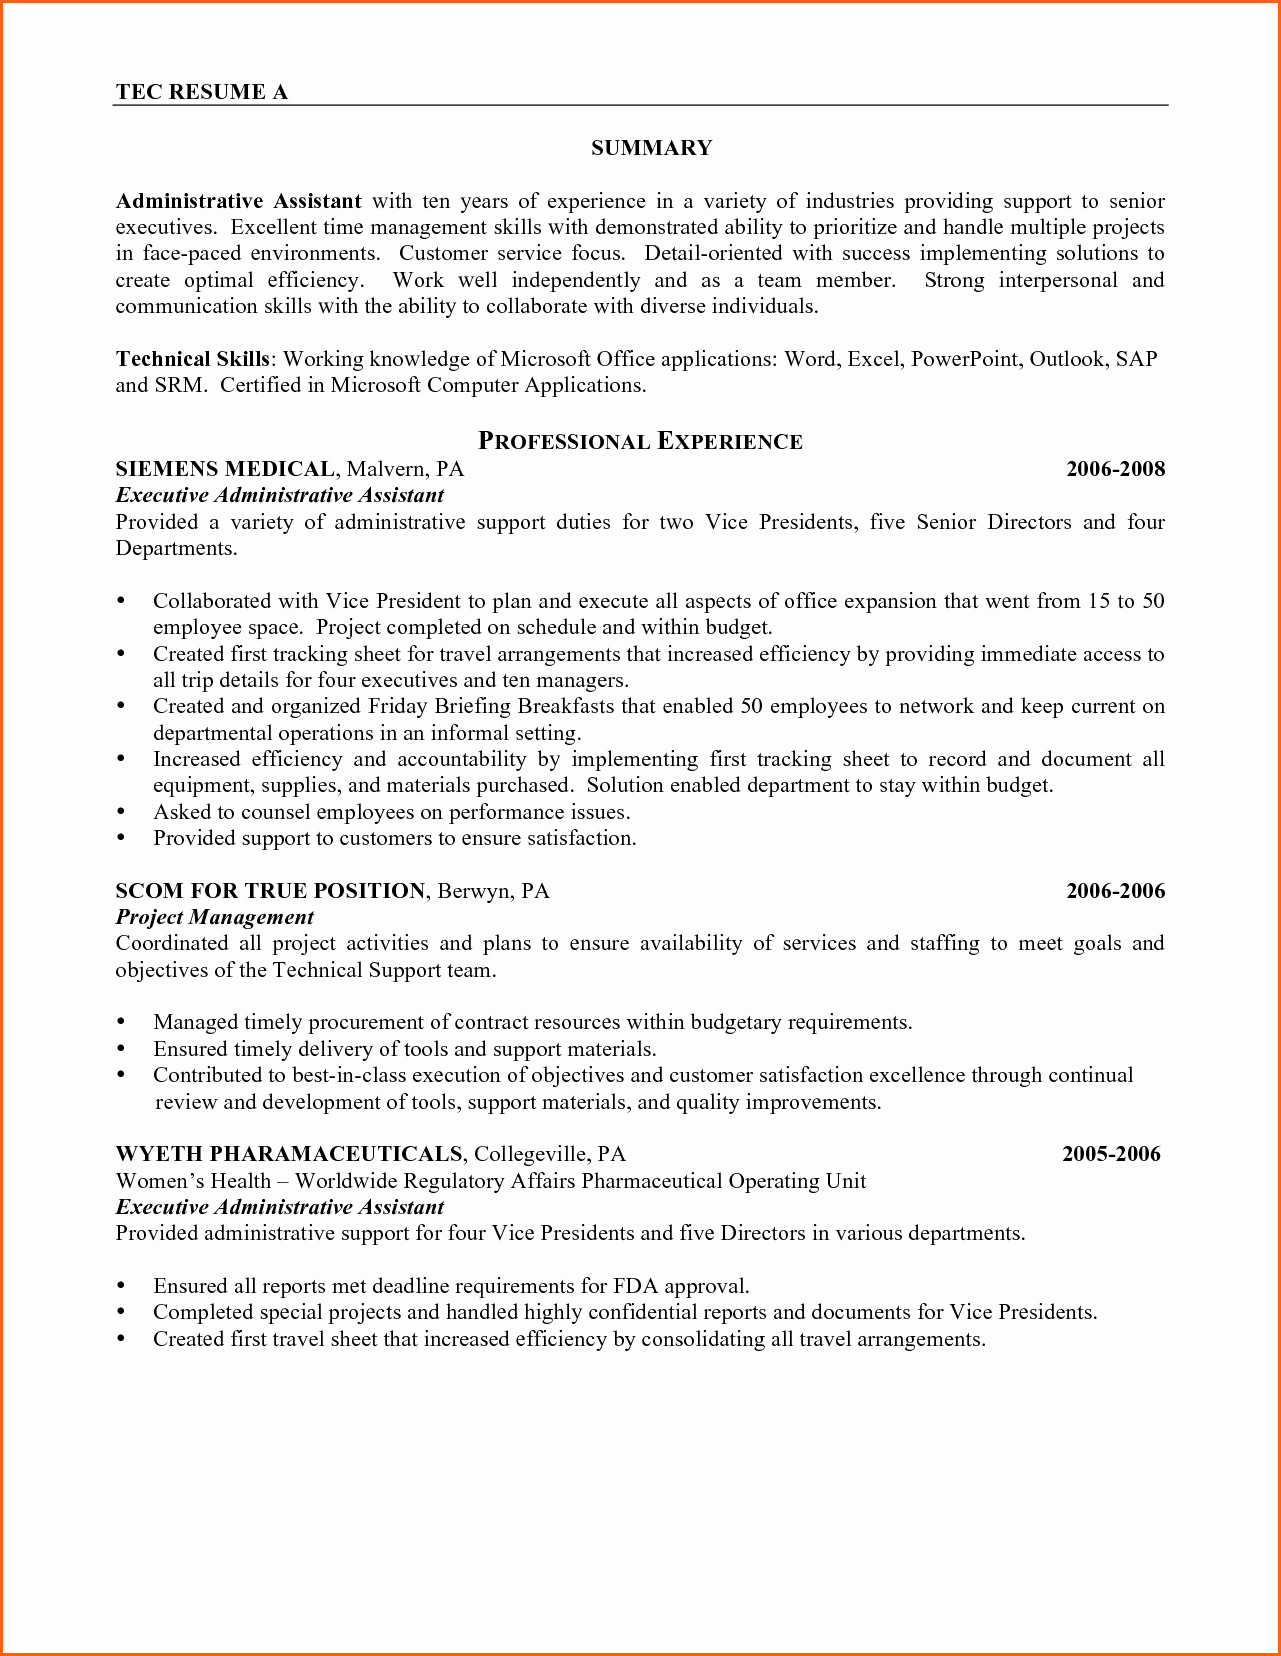 Customer Service Resume Summary event Planning Template